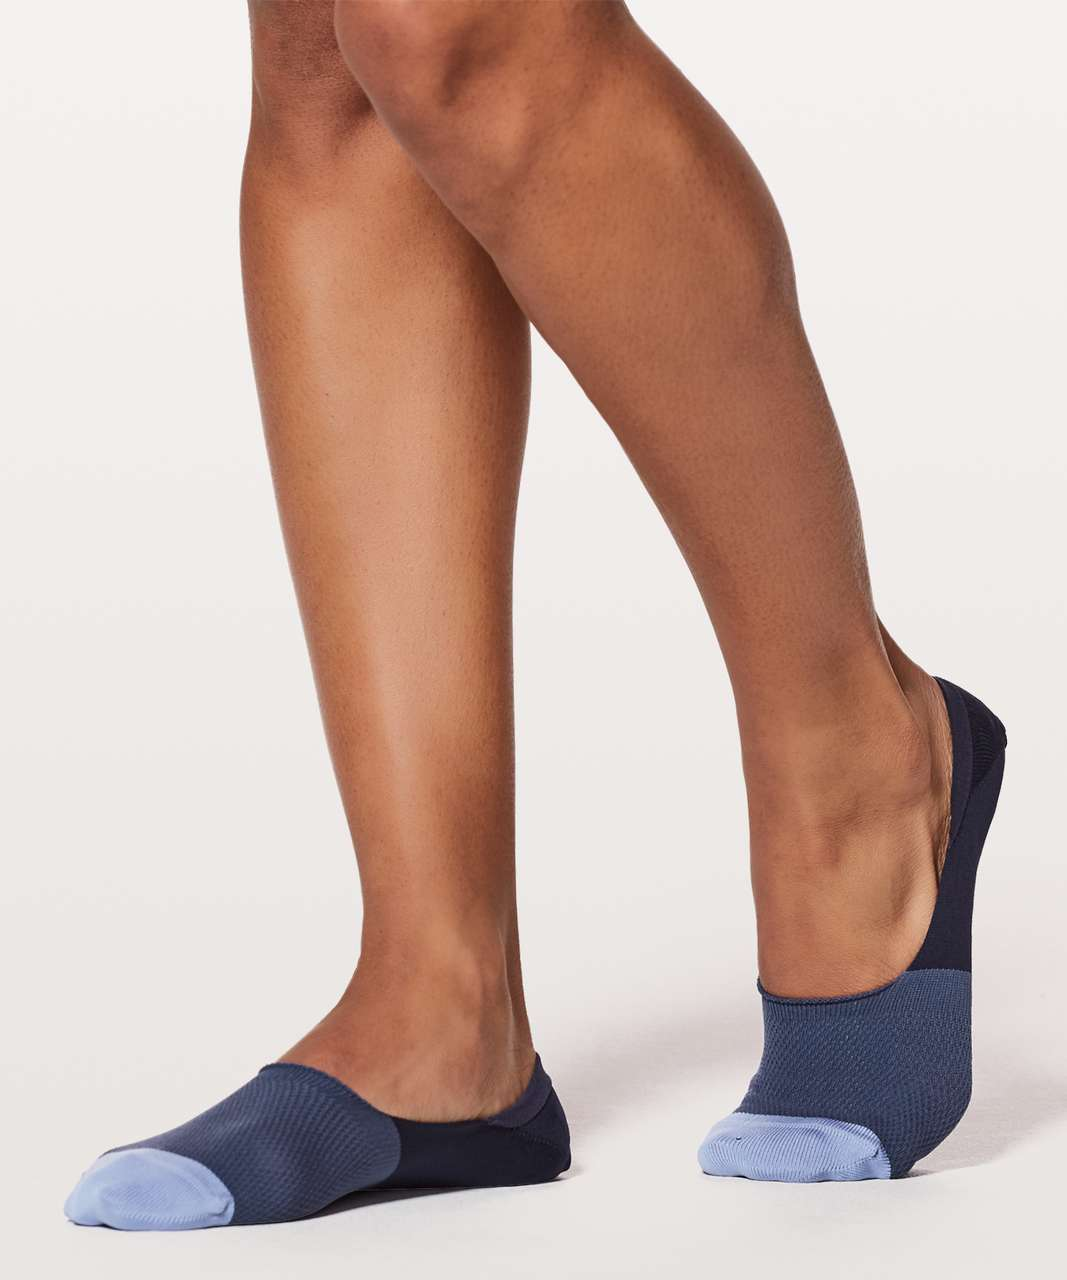 Lululemon Secret Sock - Dazed / Periwinkle Blue / Midnight Navy